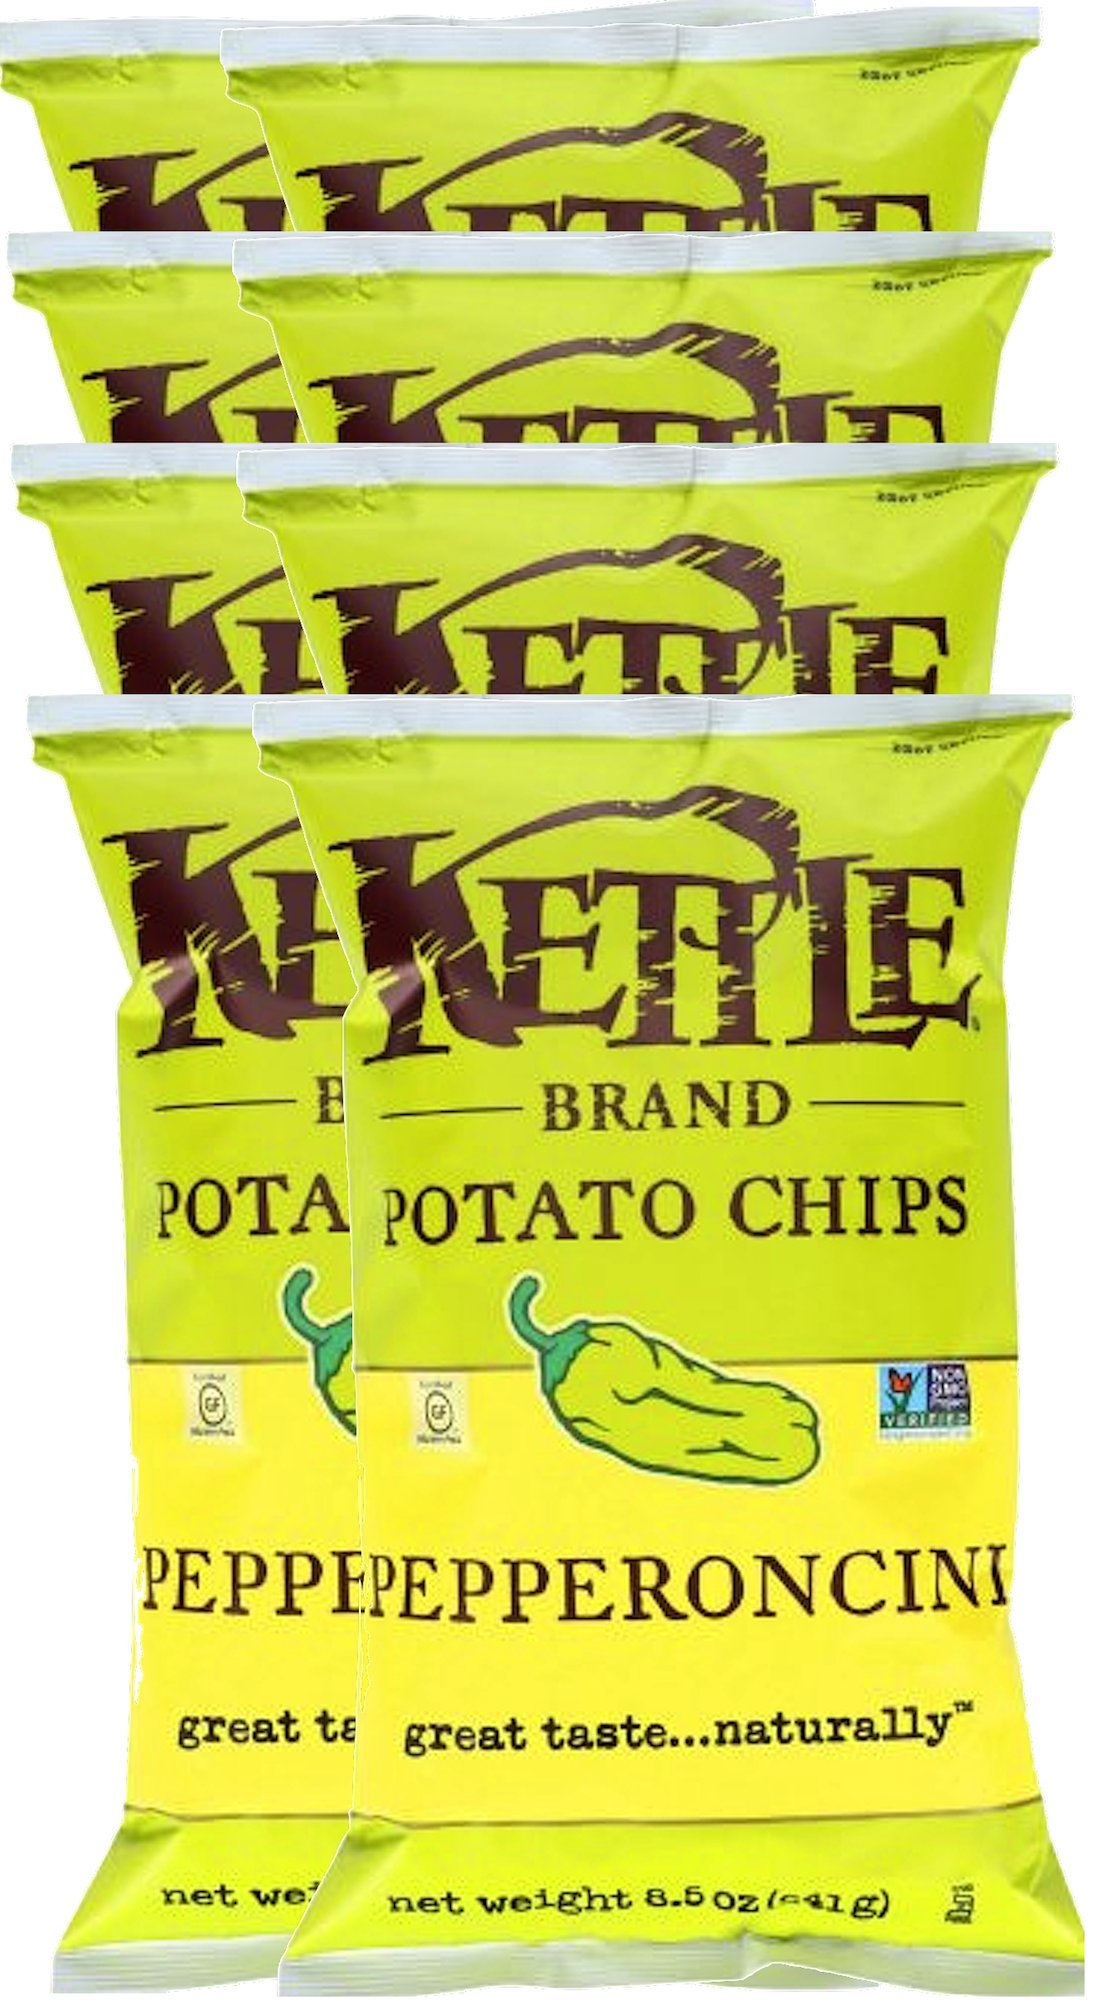 Kettle Brand Kettle Gluten Free Chips Pepperoncini 8.5oz Snack Care Package for College, Military, Sports (8)